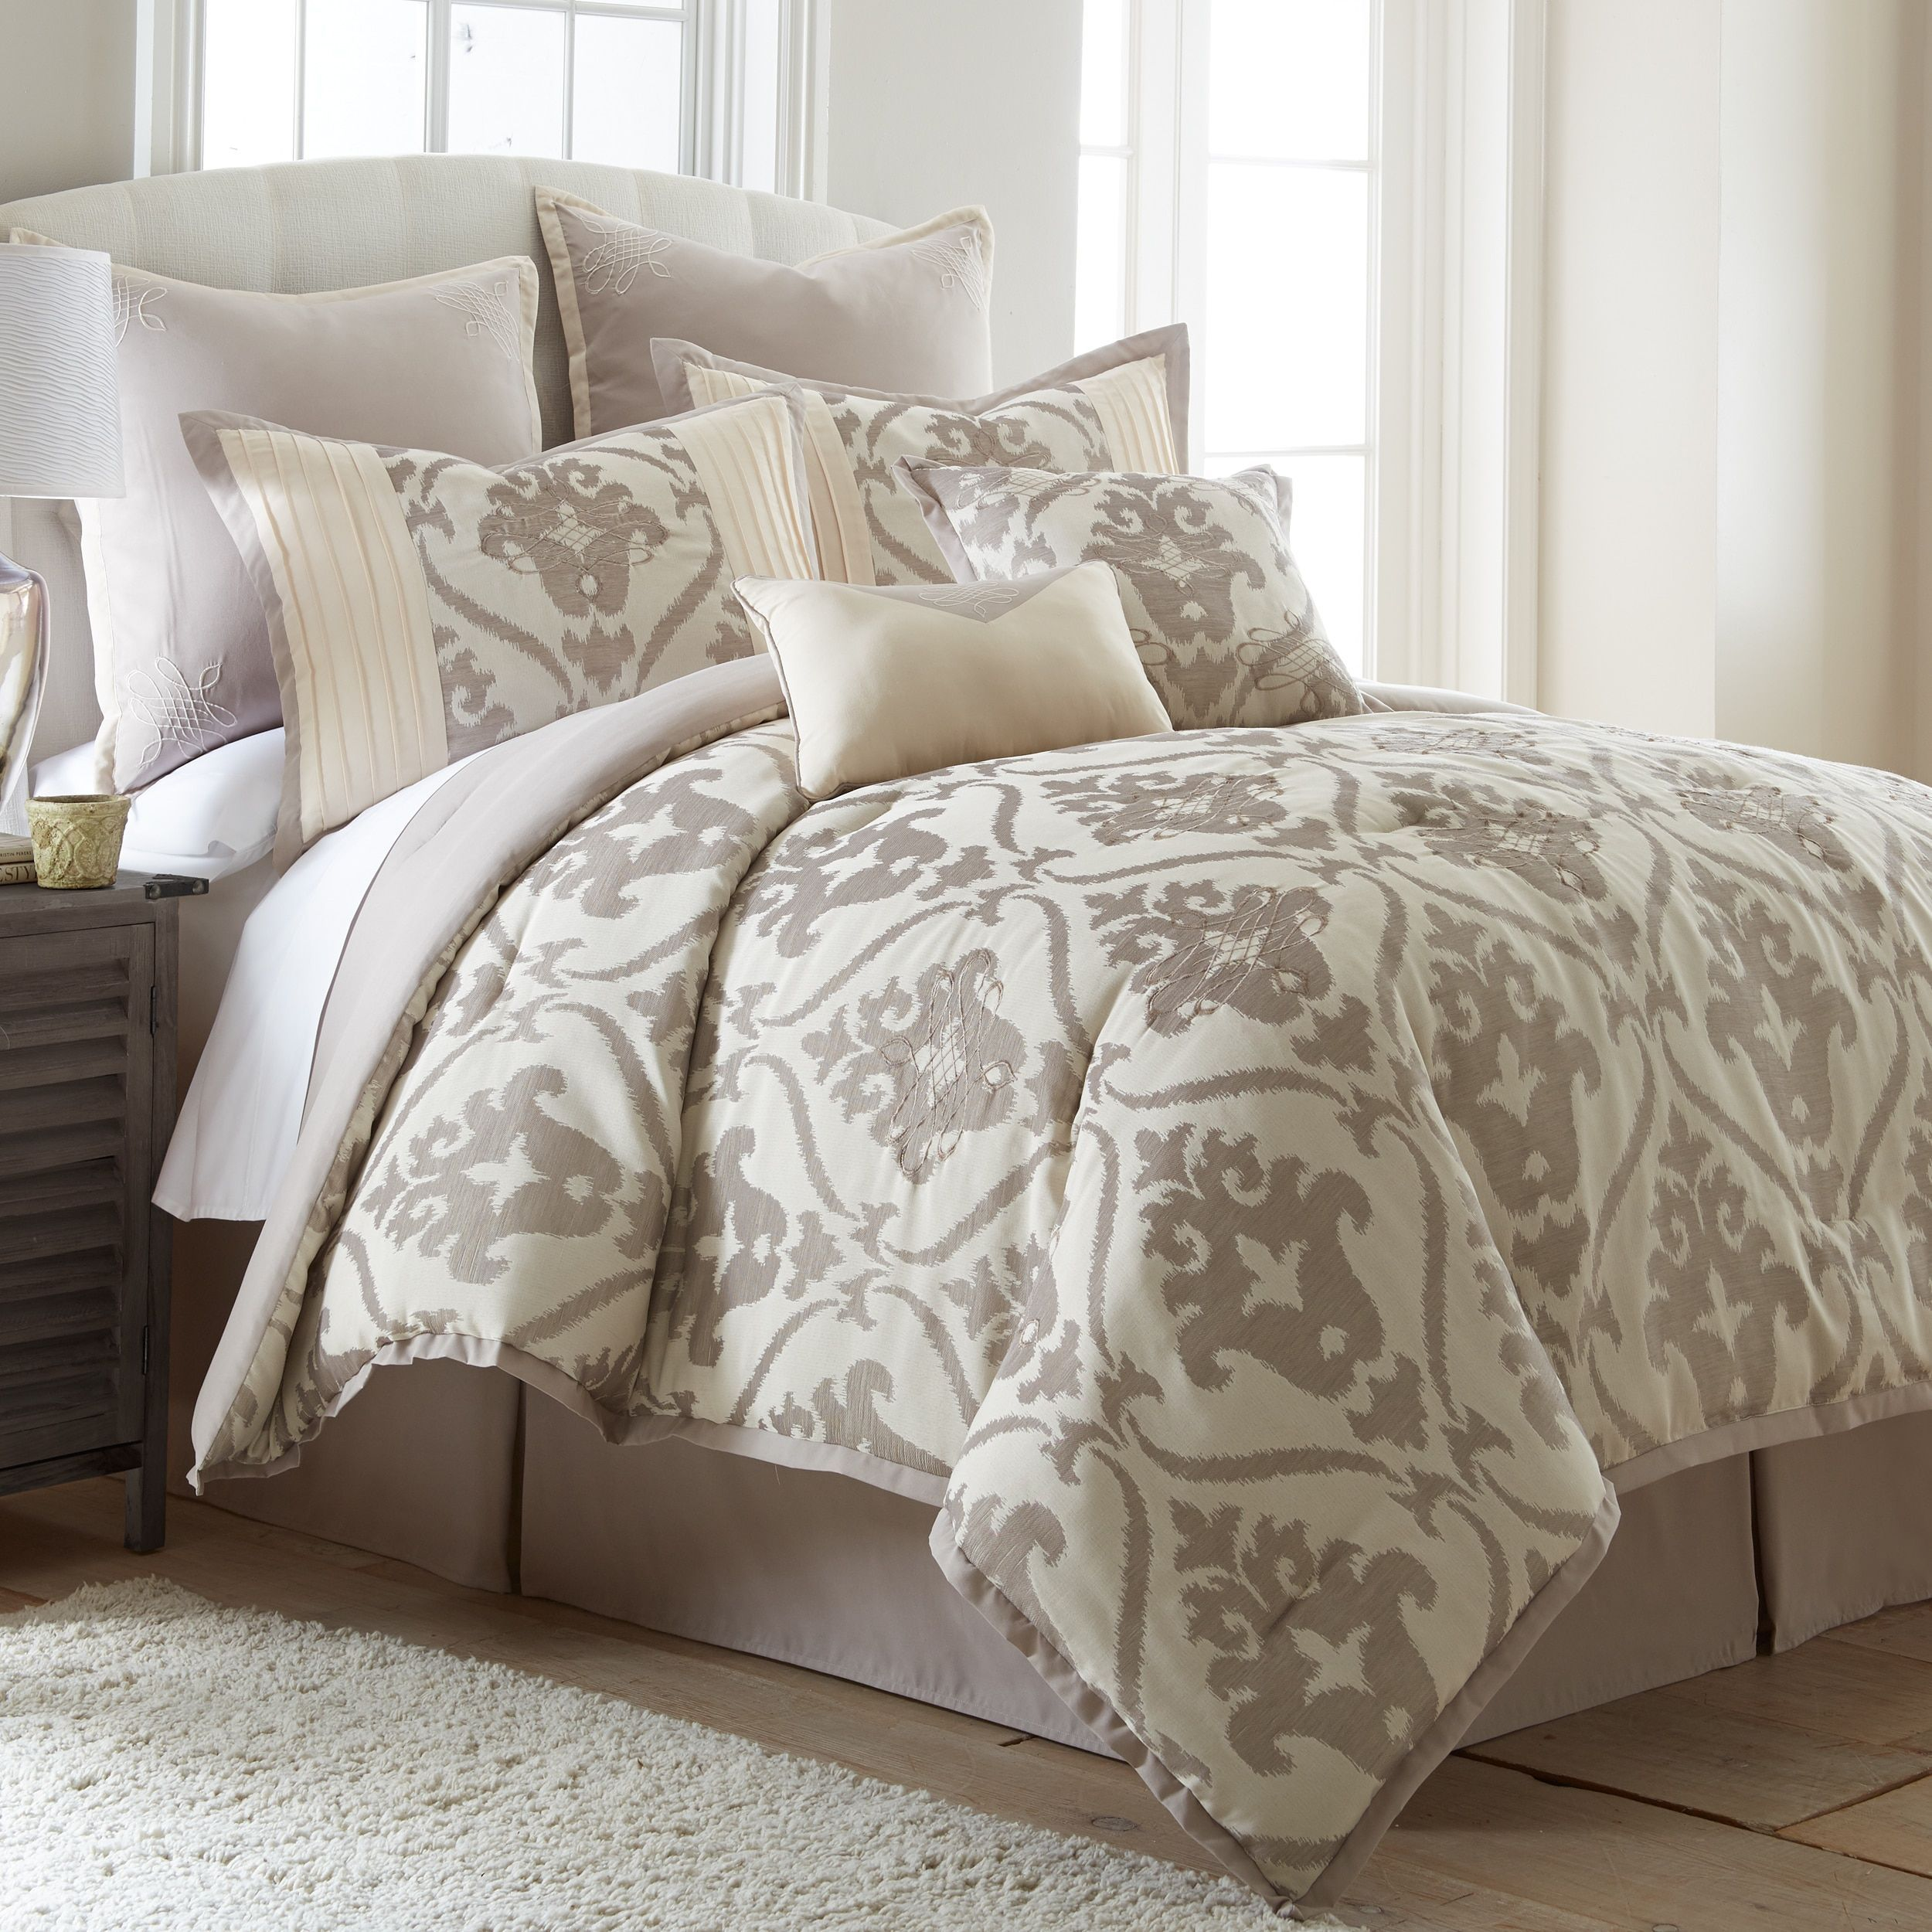 NEW Queen King Bed Tan Cream Embroidered Damask 8 Pc Comforter Euro Set  Elegant